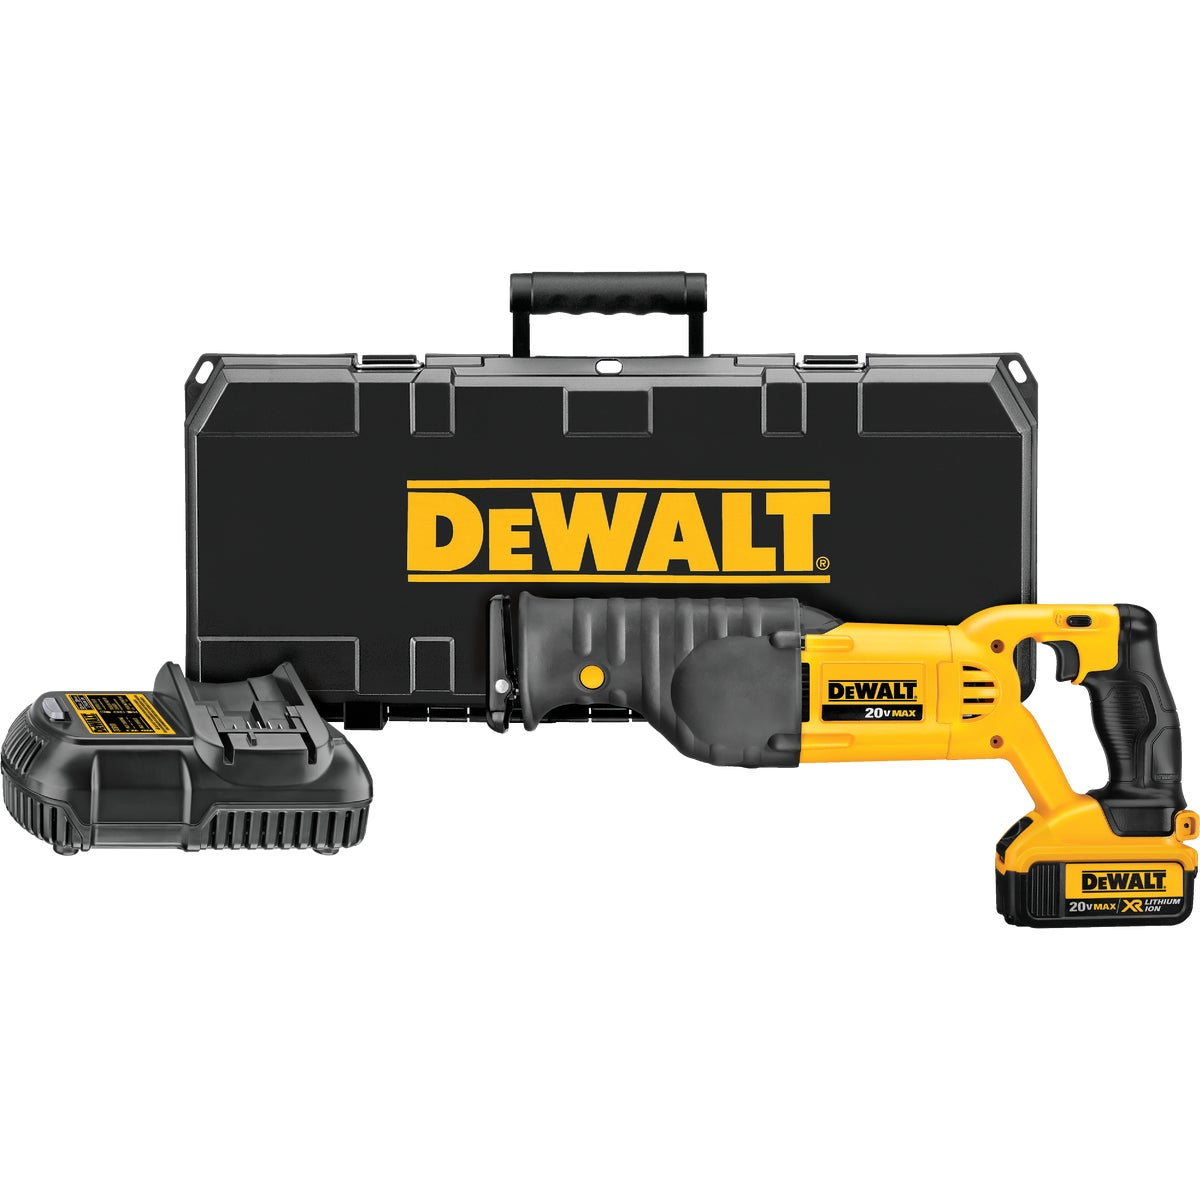 20V RECIPROCATING SAW - DCS380M1 by DeWalt